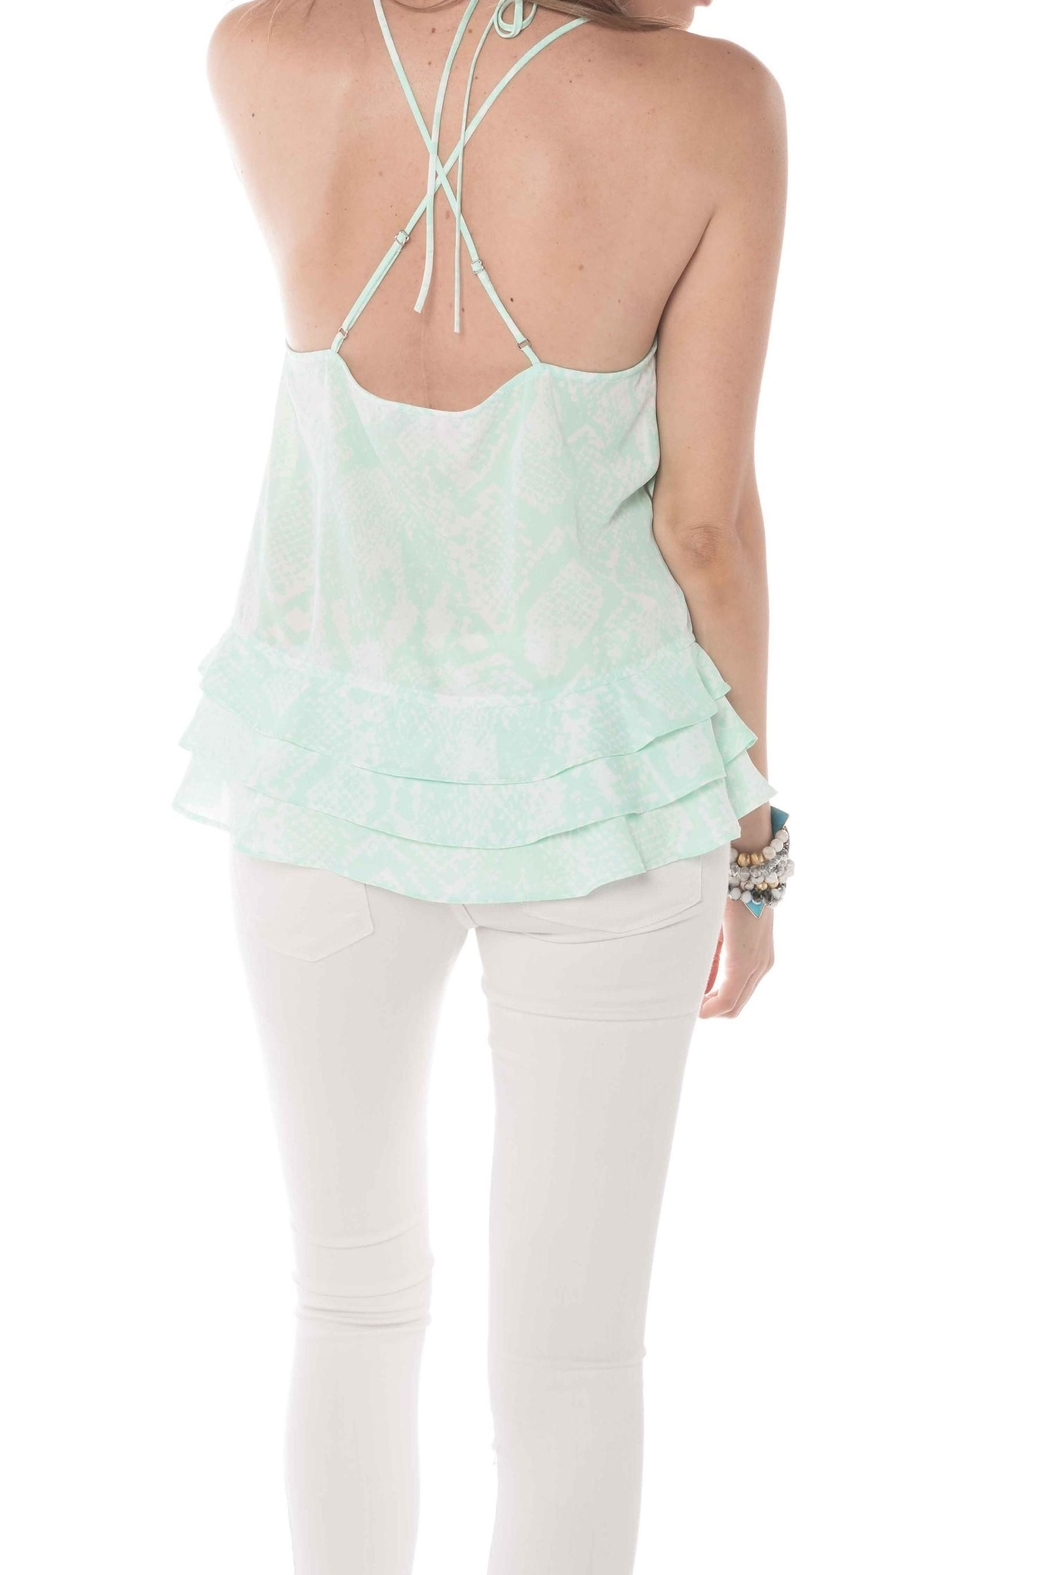 Buddy Love Luna Mint Tank - Front Full Image